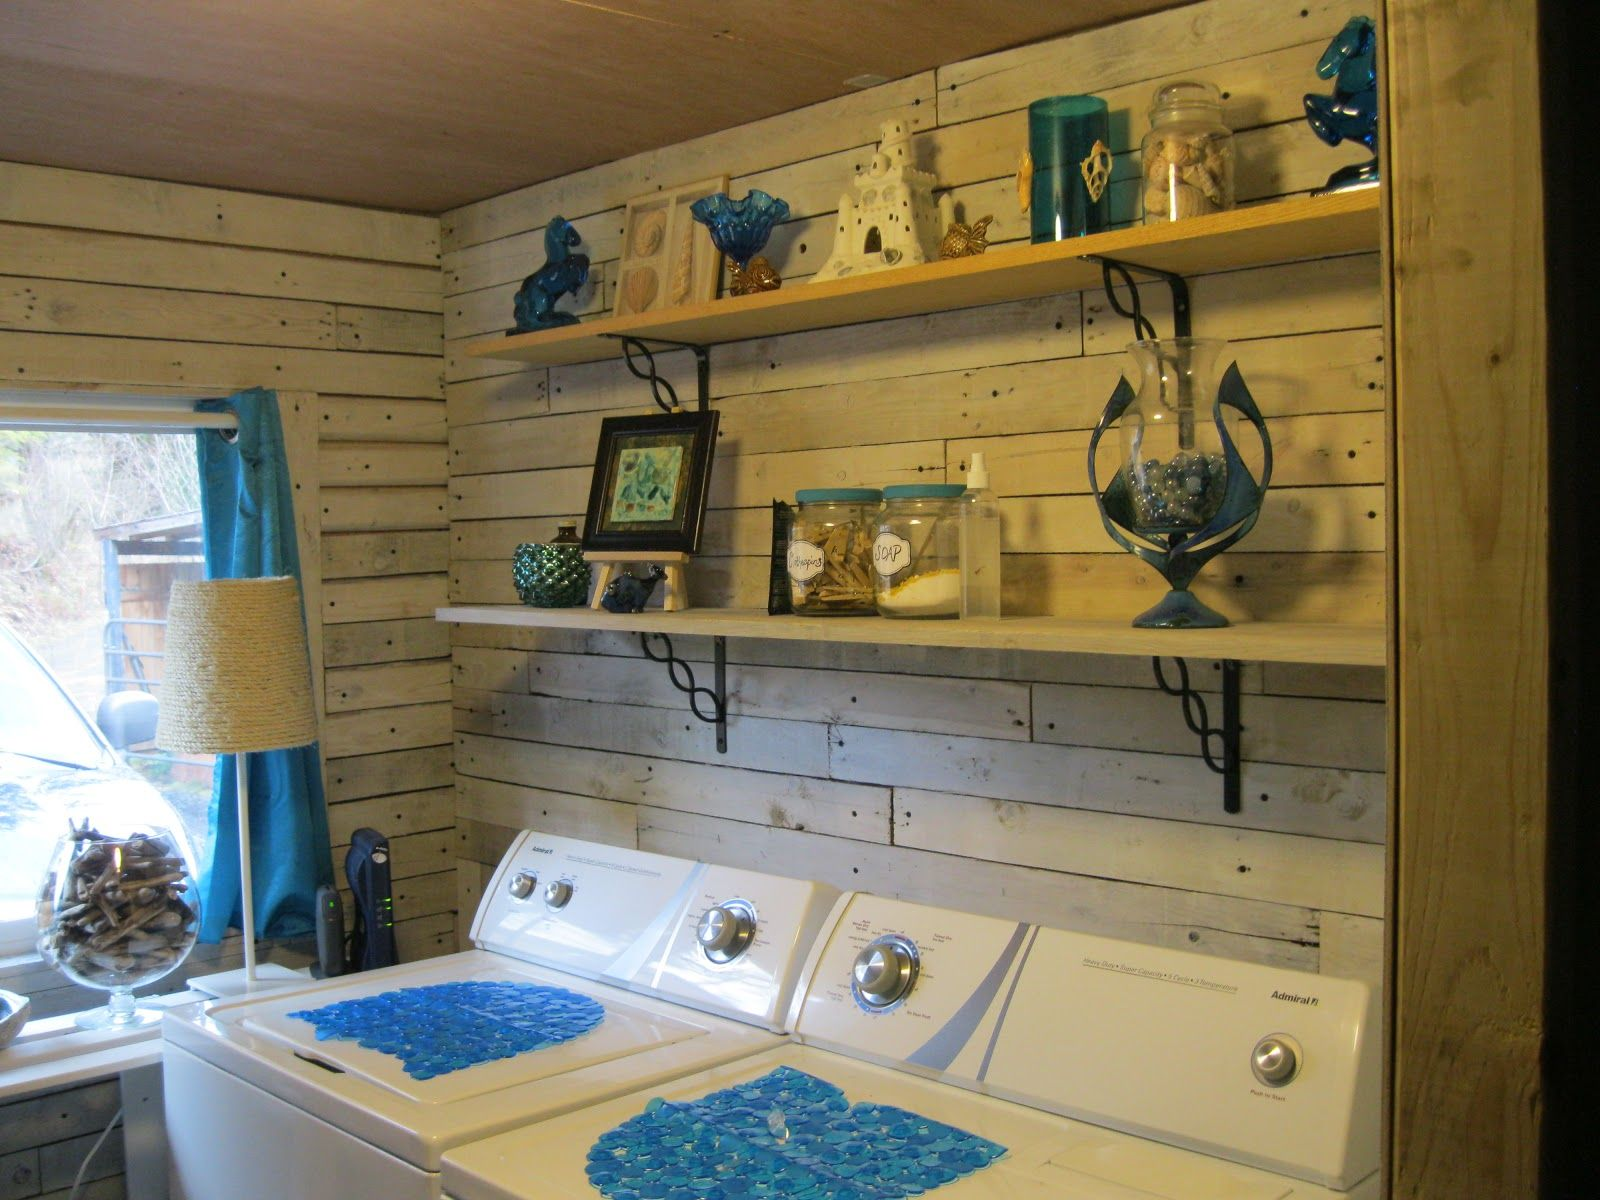 Laundry room makeover ideas for your mobile home laundry for Renovation ideas for small homes in india